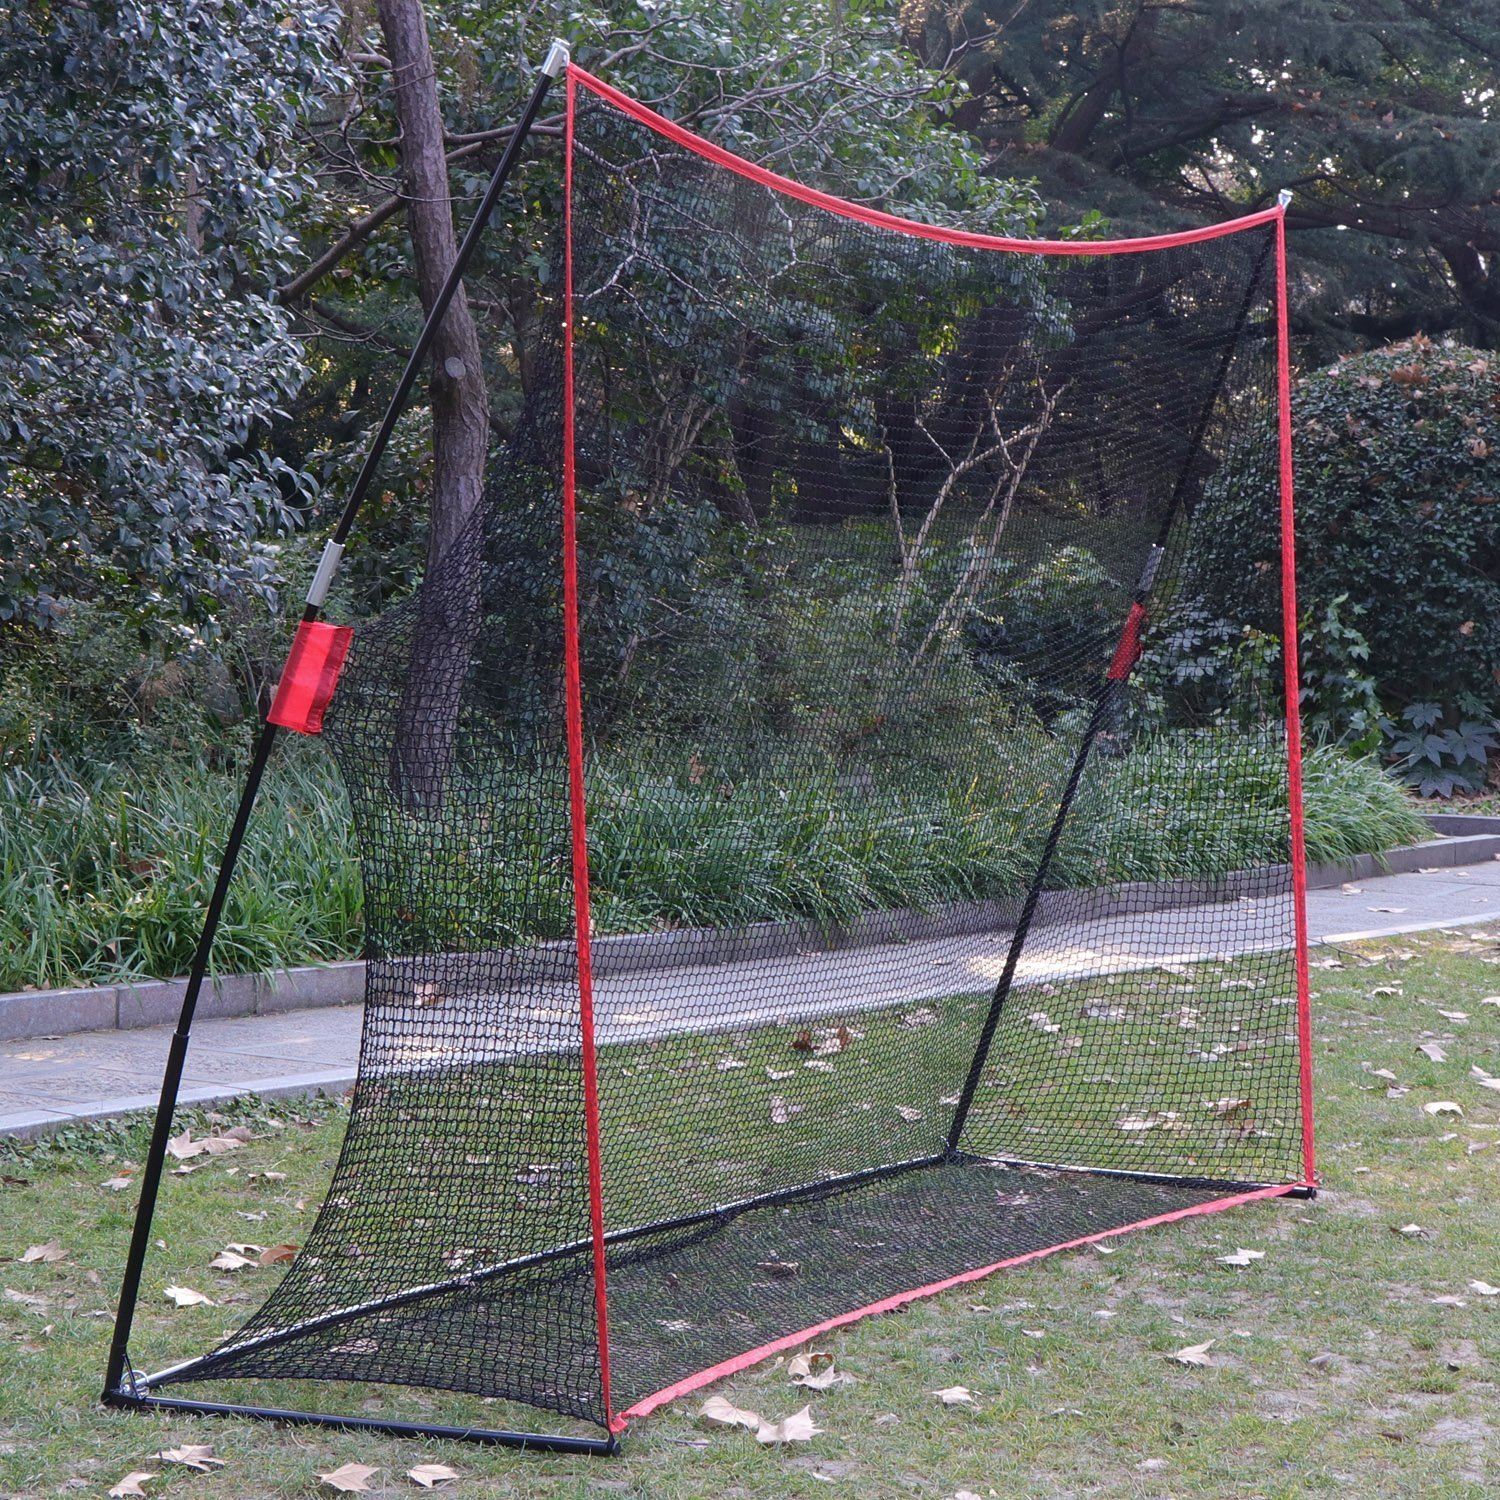 Fashine 10 x 7ft Golf/Baseball/ Soccer/Lacrosse Training Pitching Hitting Net Practice Driving Indoor and Outdoor with Bow Frame and Carrying Bag (US Stock) by Fashine (Image #6)